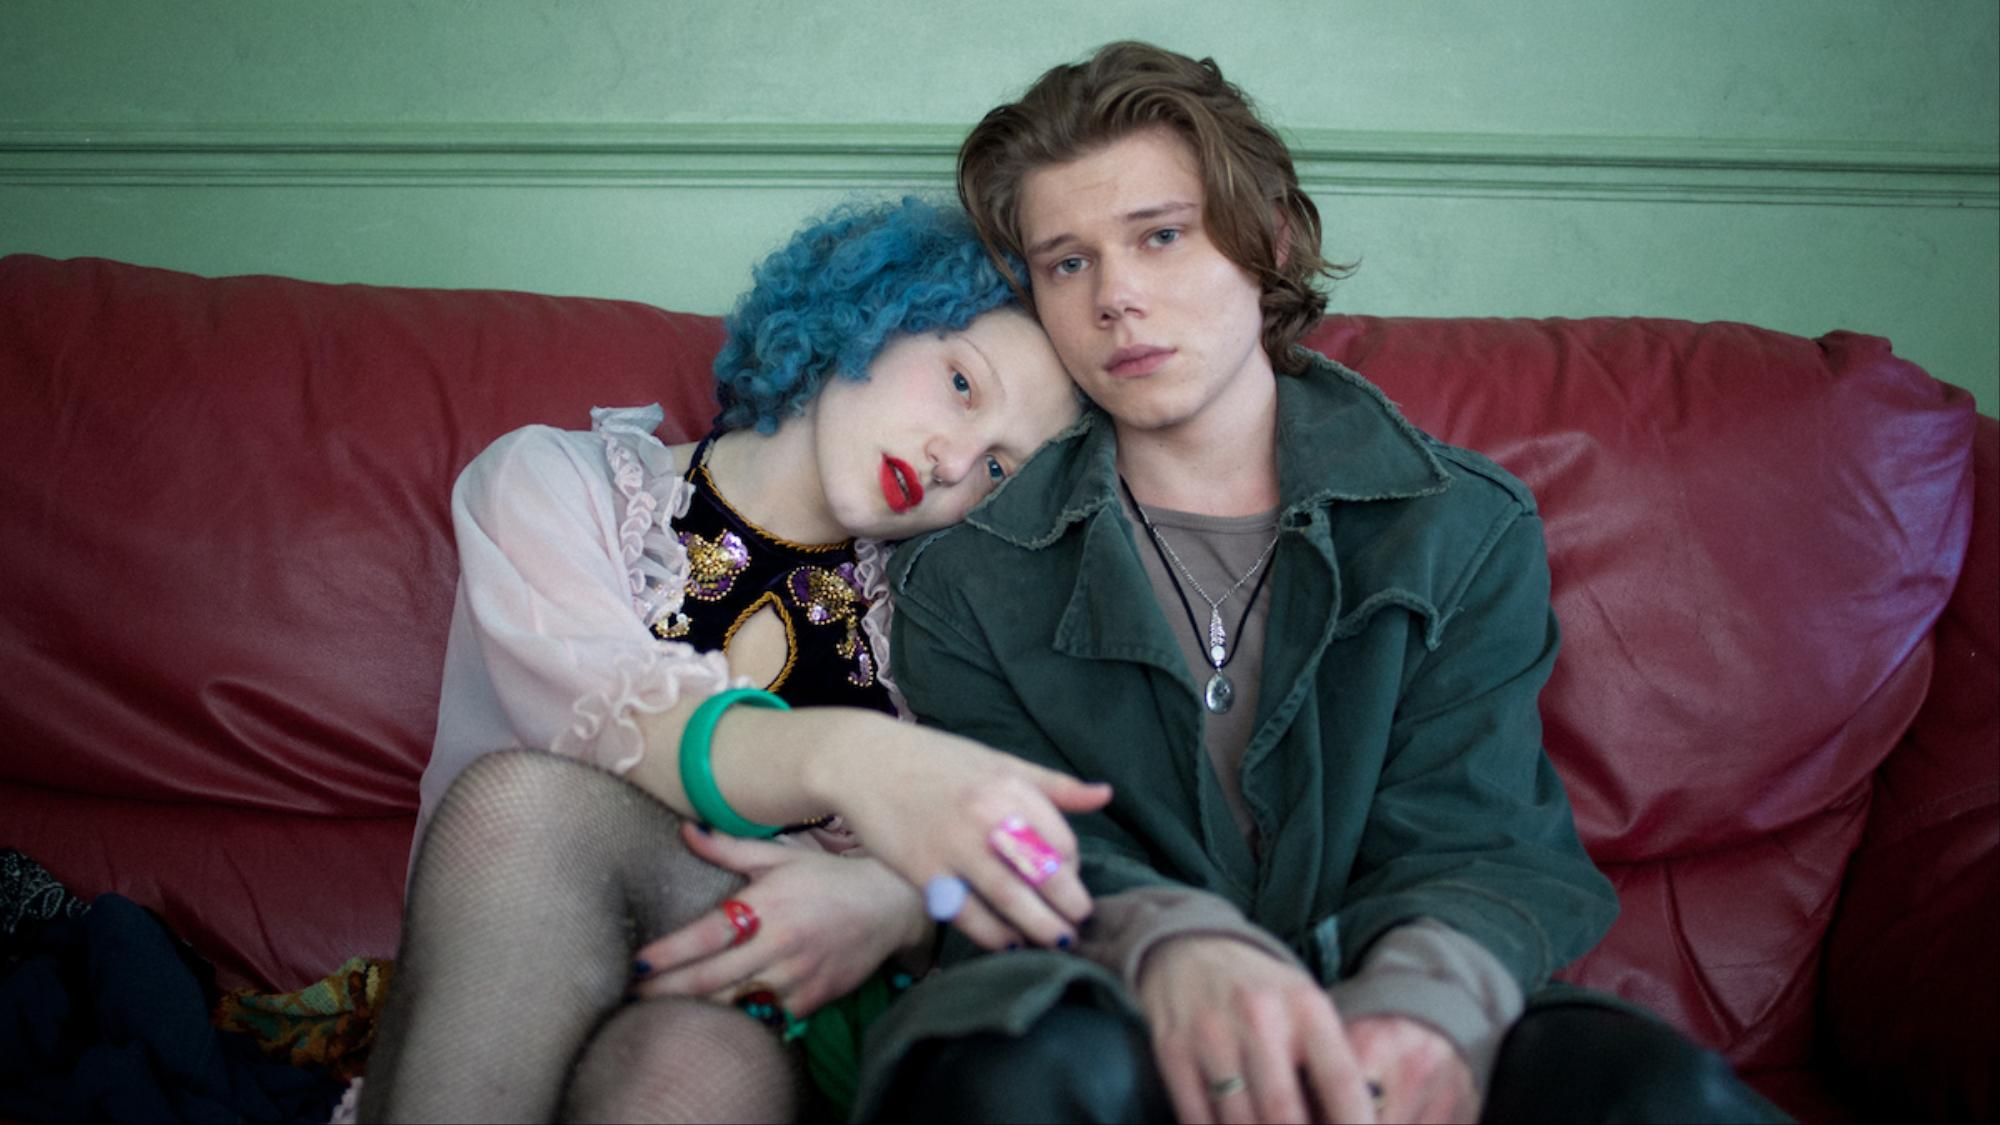 meet the break-out stars of spaceship, the british teen subculture film